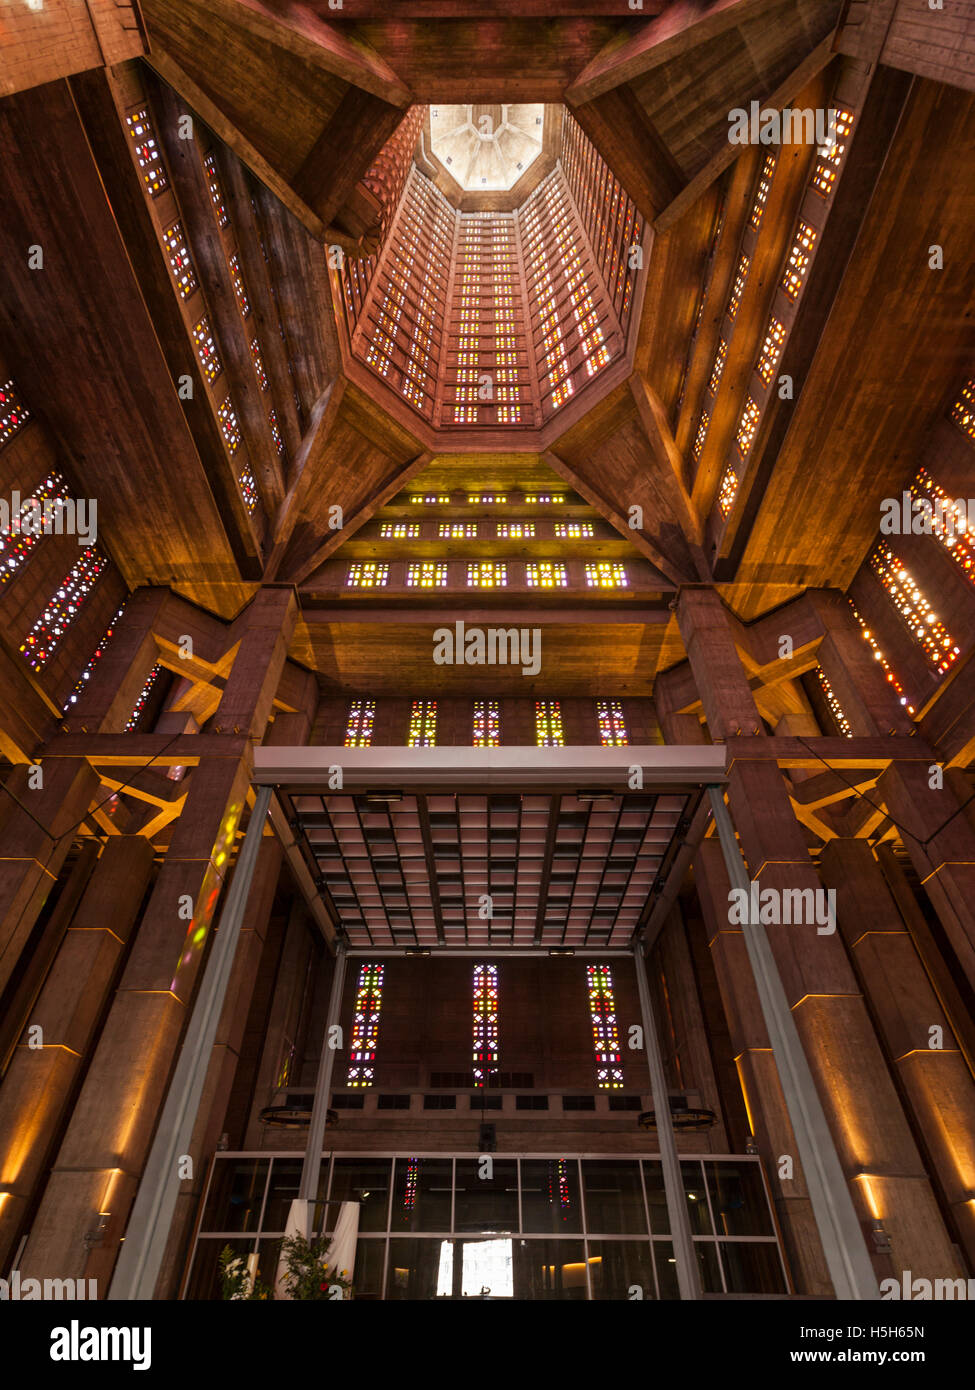 Interior view of  the Church of Saint Joseph, Le Havre, France - Stock Image